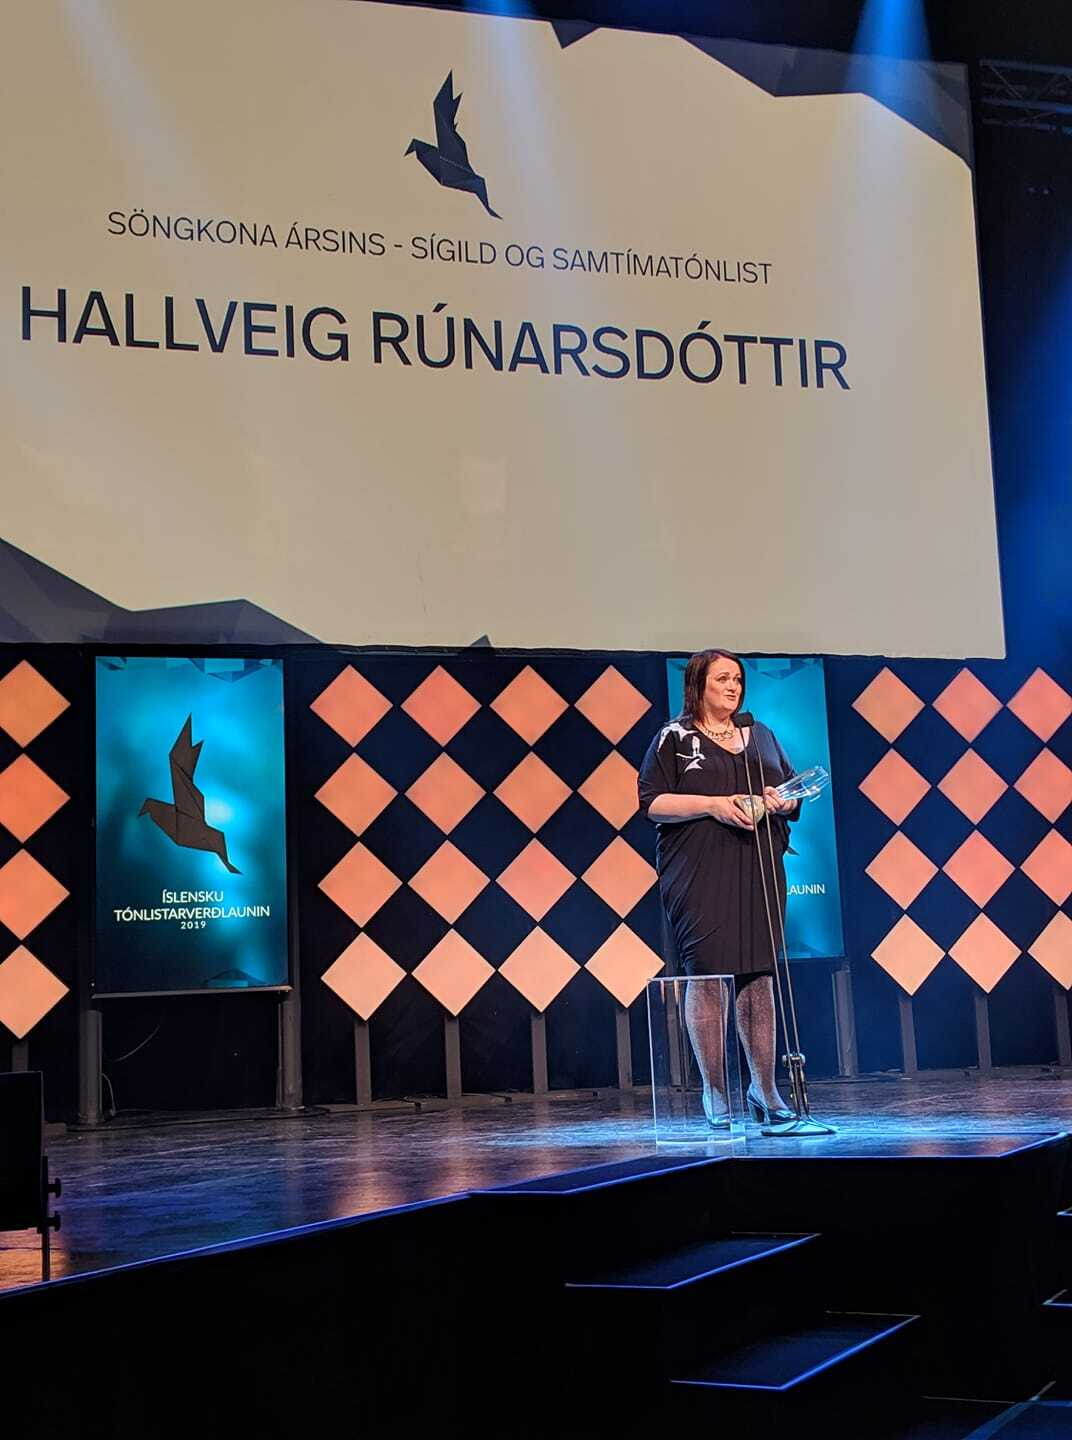 Hallveig Runarsottir, Icelandic soprano singer and winner at the 2019 Icelandic Music Awards